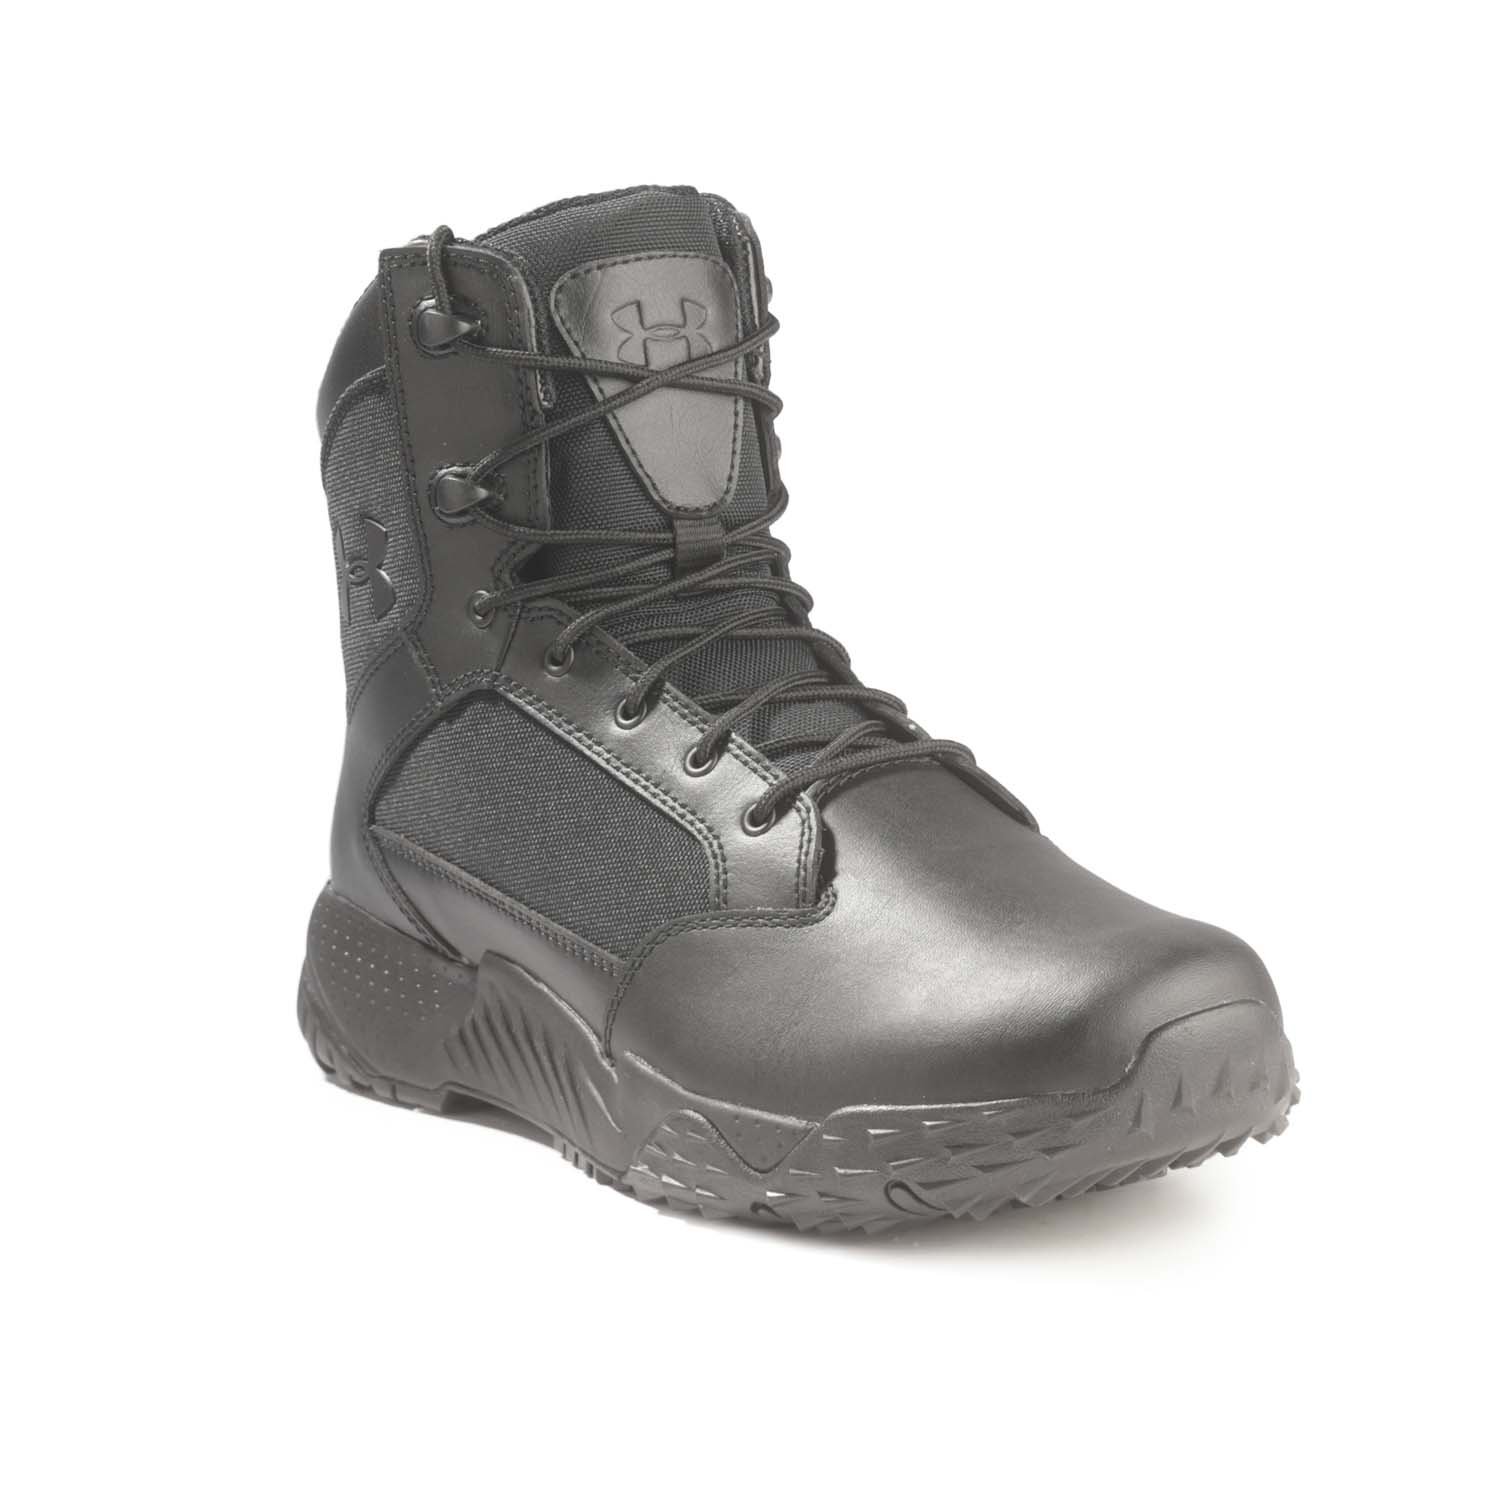 Under Armour Women's Stellar Tac 2E Boot